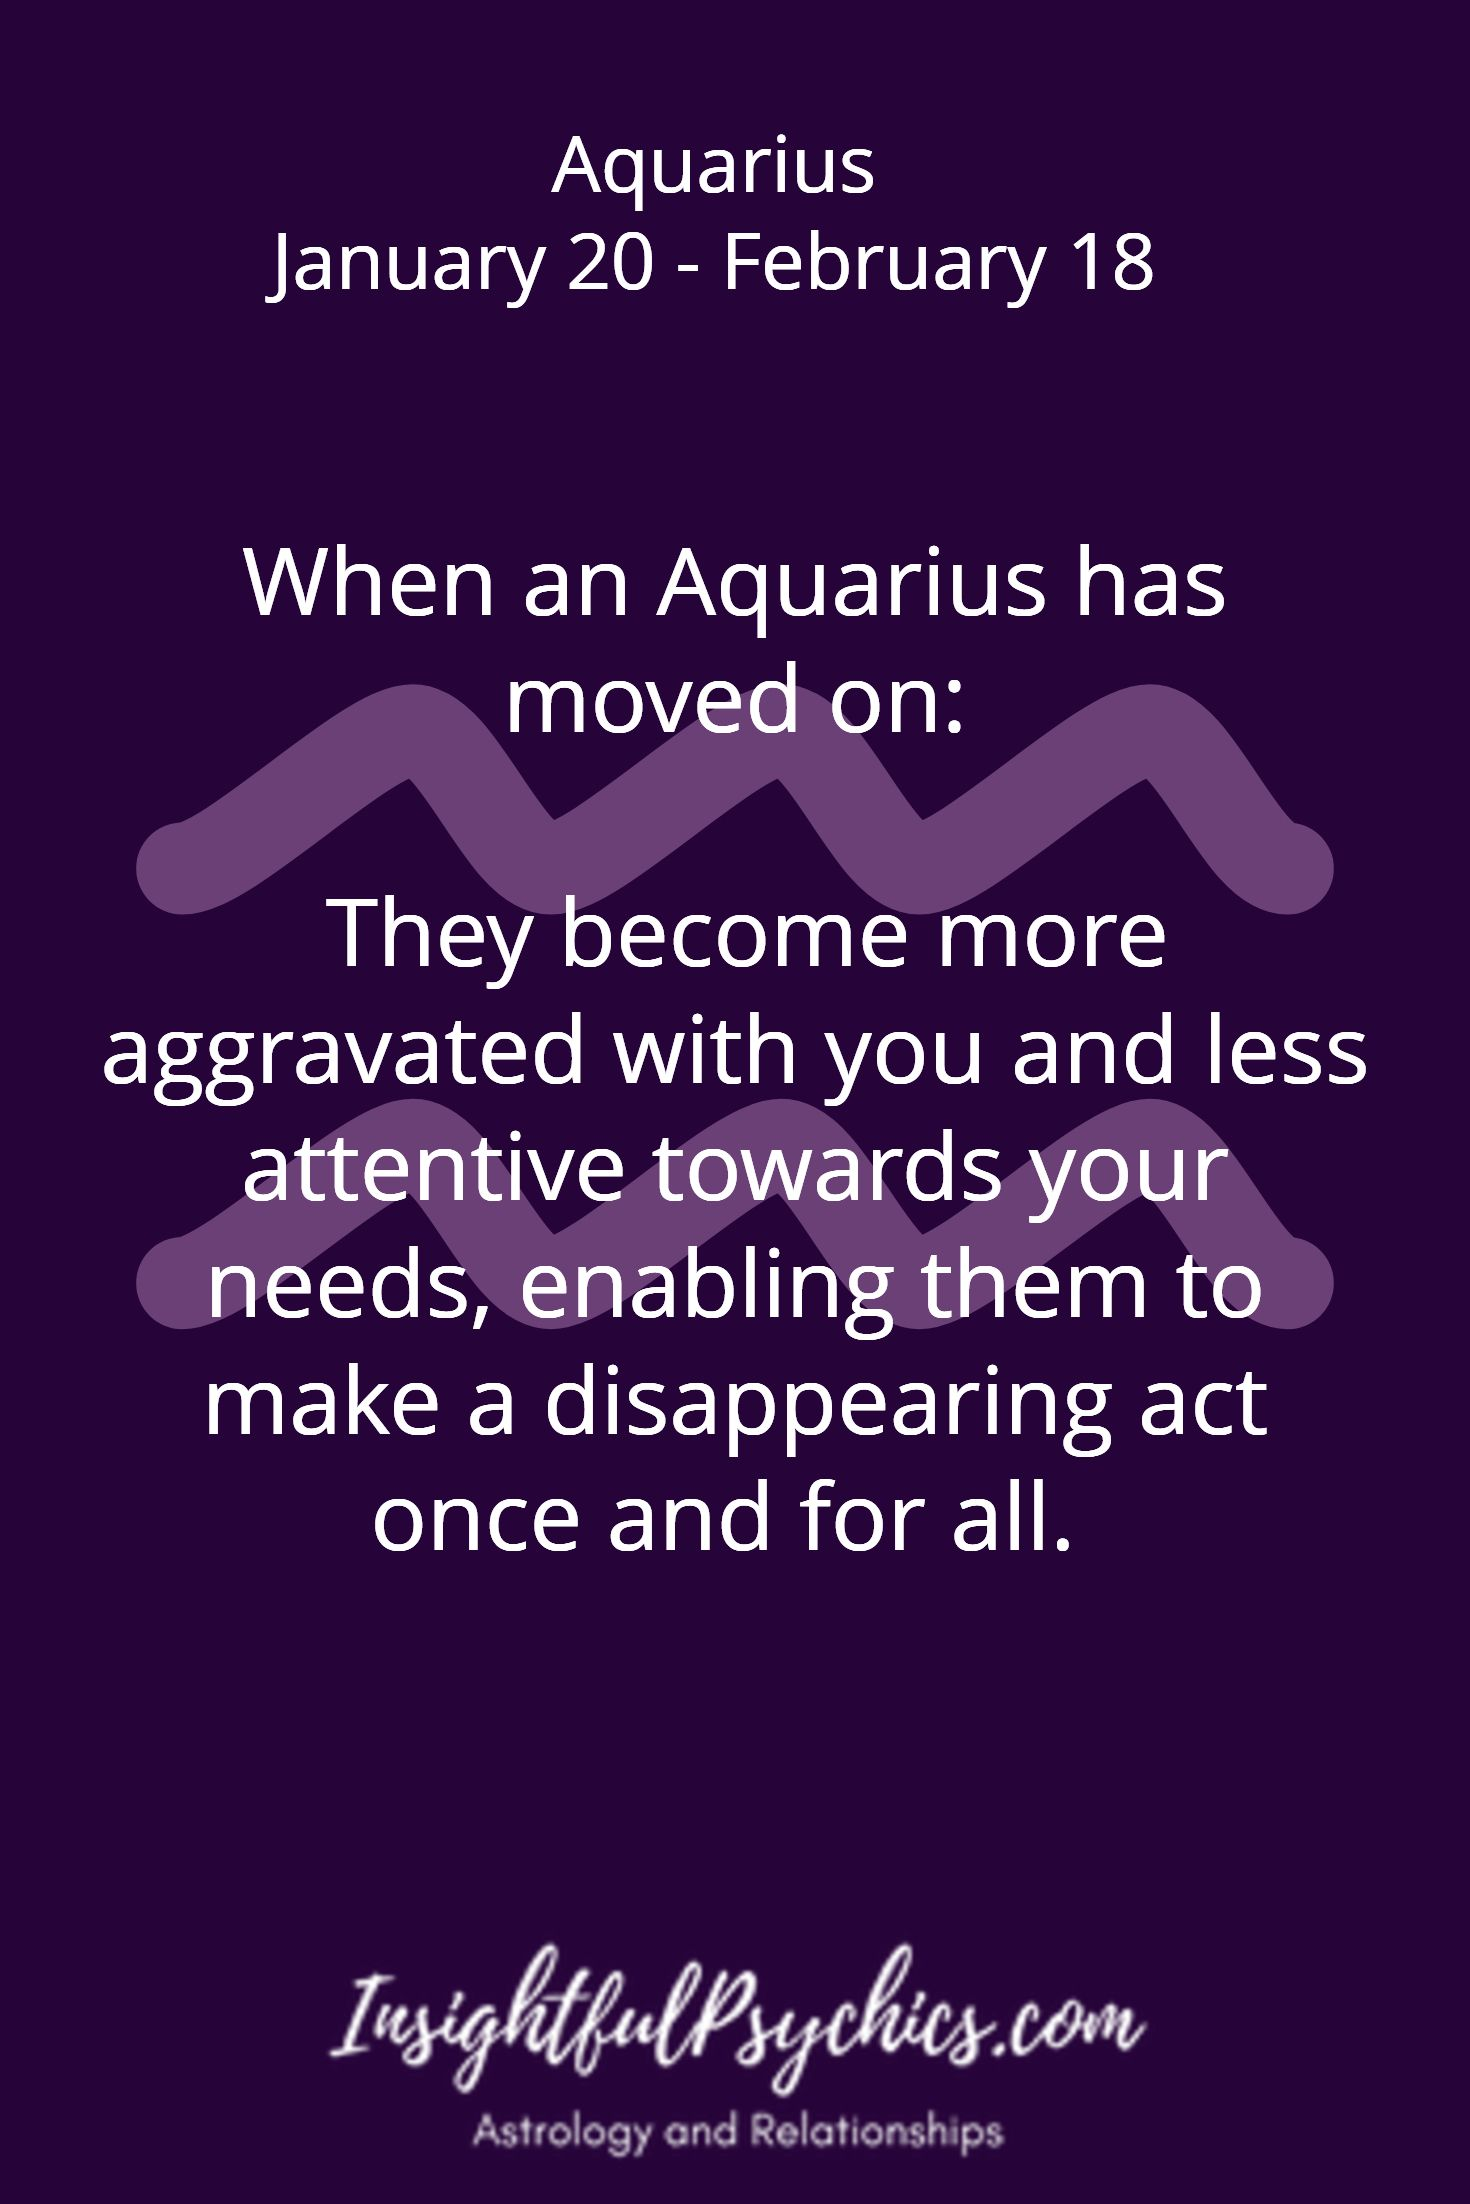 Dating An Aquarius And Relationships Aquarius Relationship Aquarius Life Aquarius